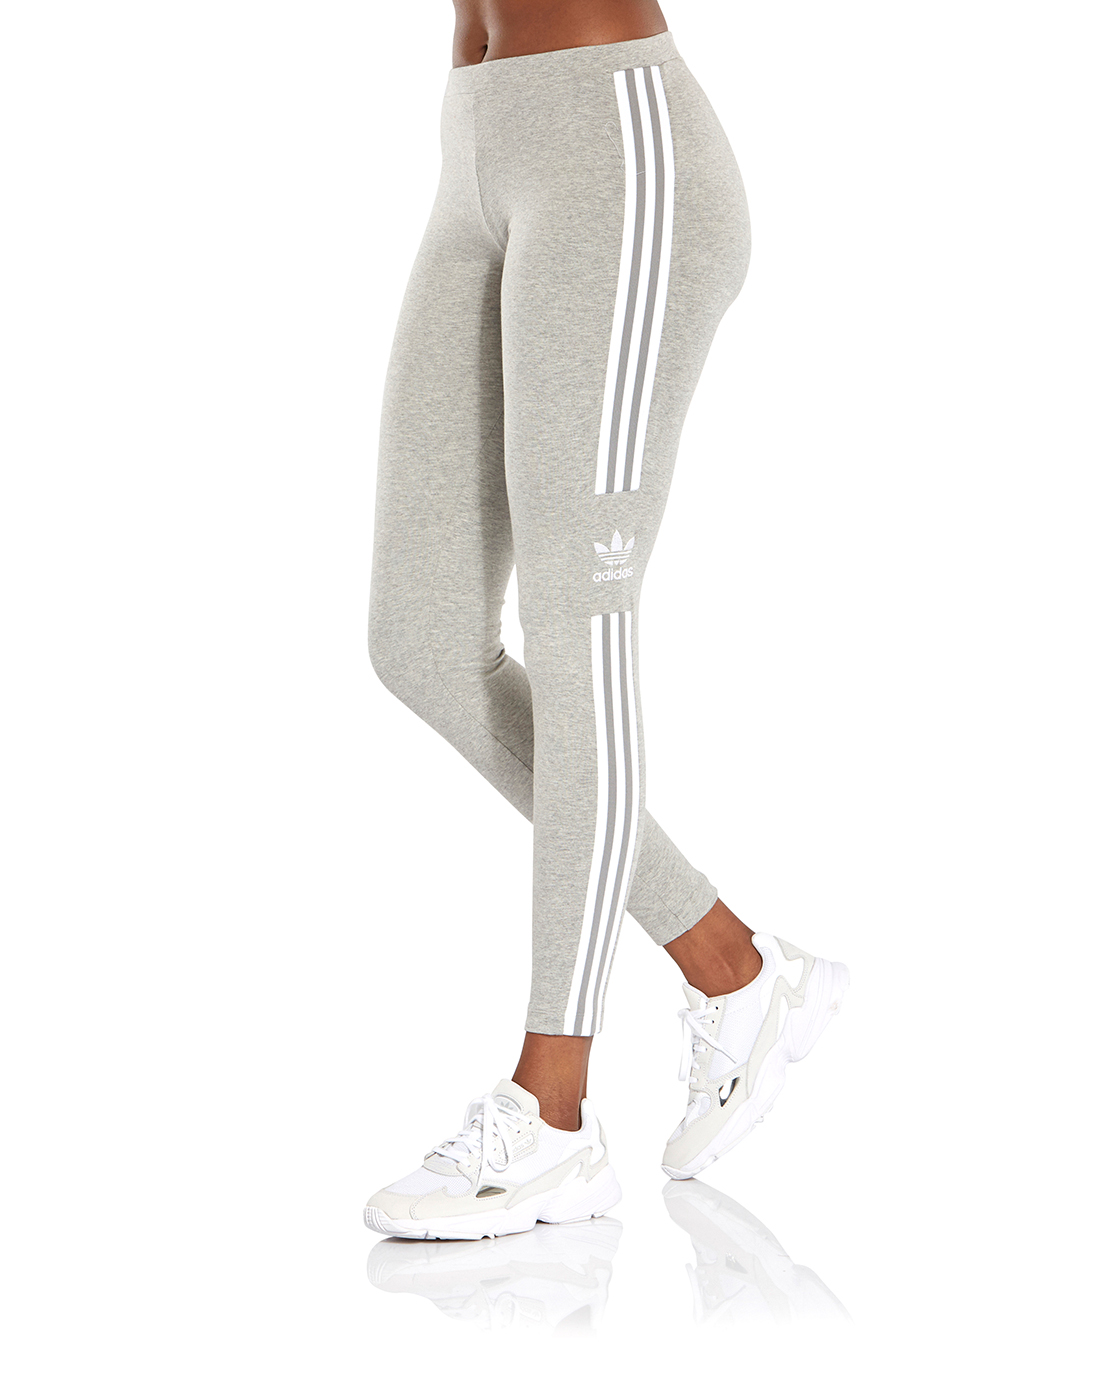 c05f3df2566 Women's Grey adidas Originals Trefoil Leggings | Life Style Sports